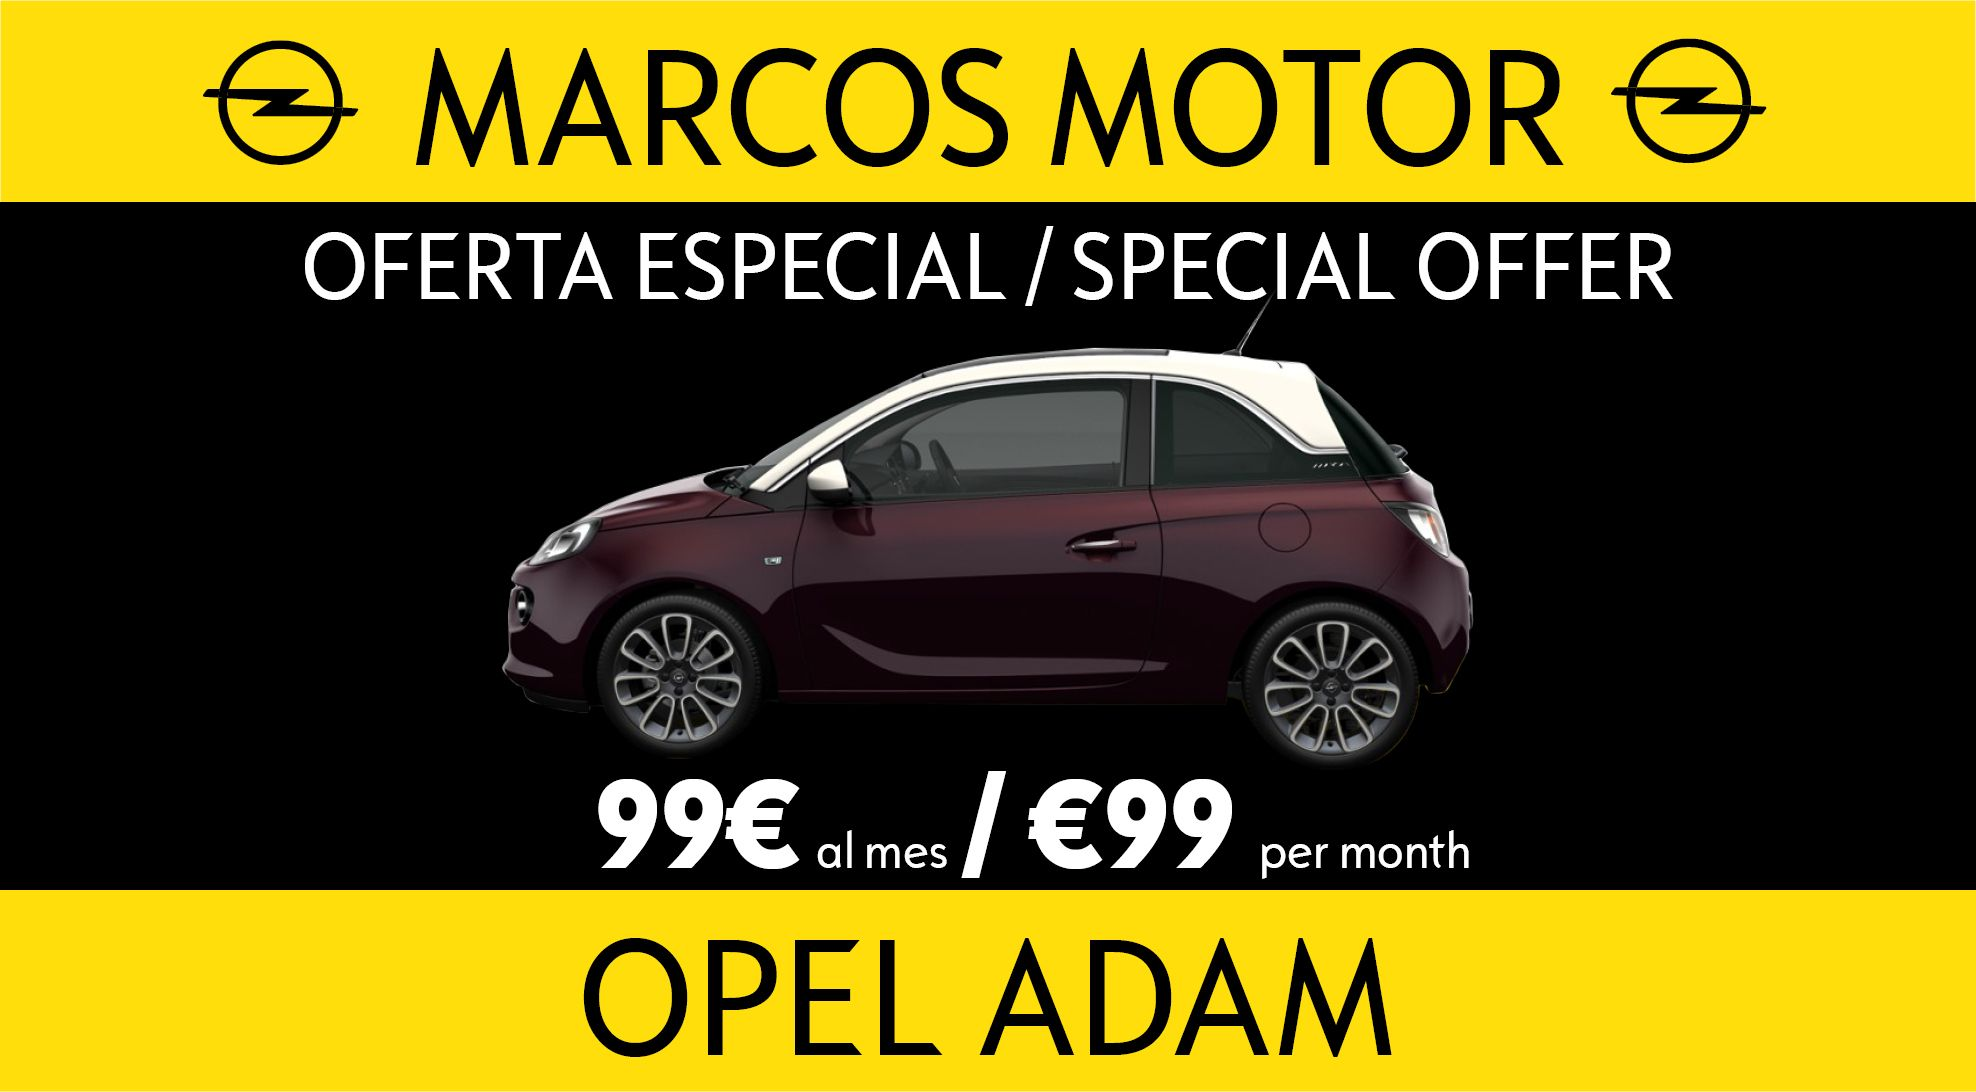 Opel Adam Offer €99 per month